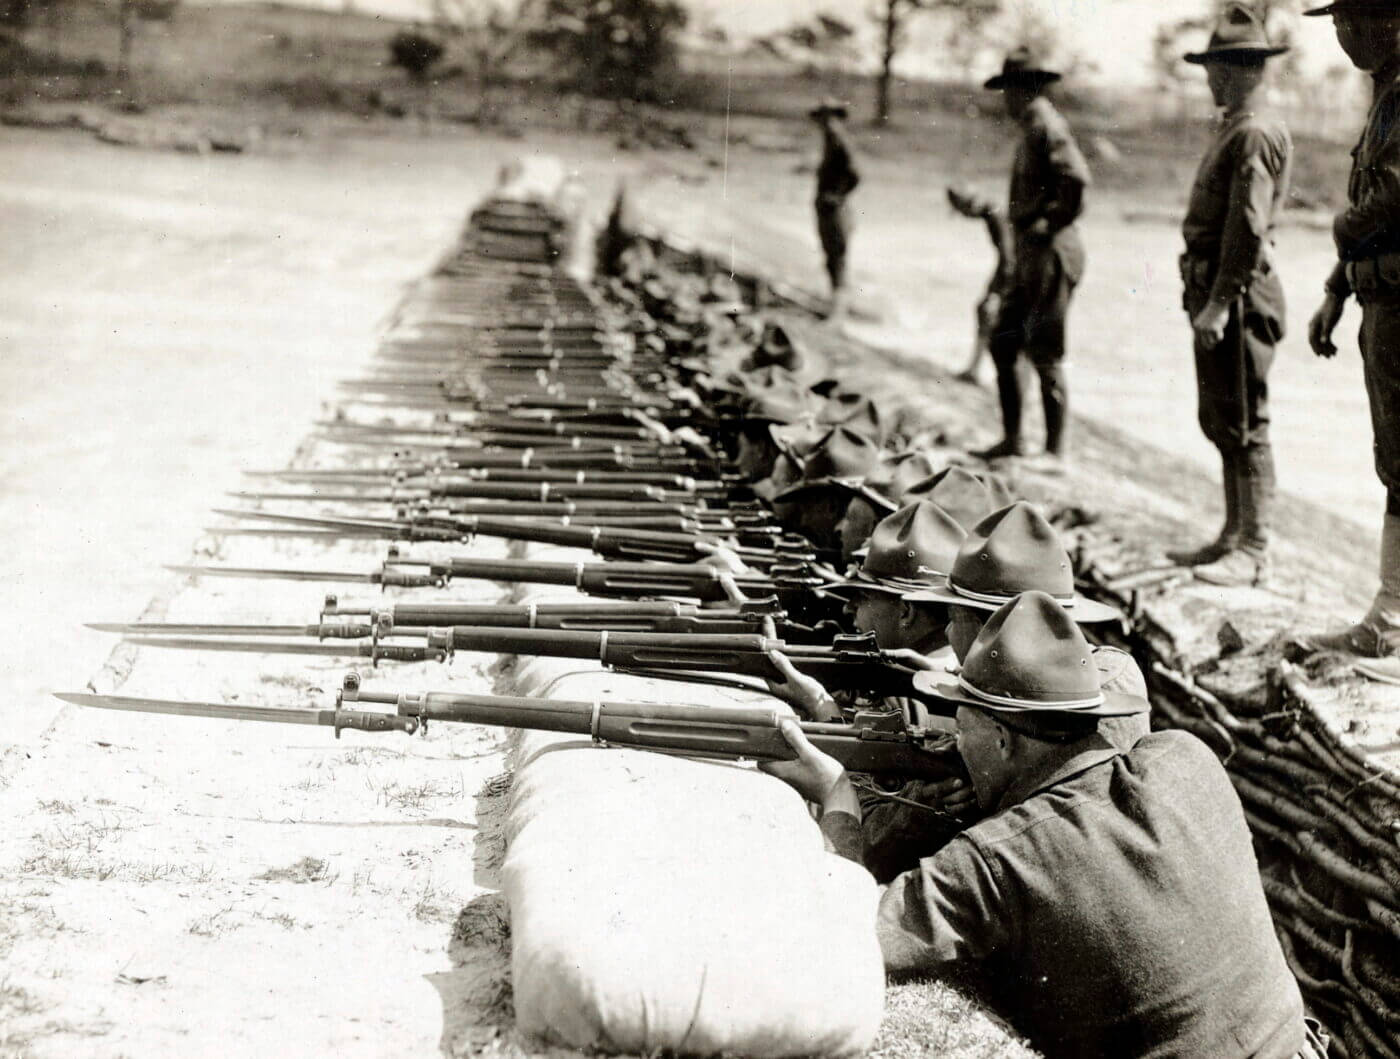 Soldiers at Camp Meade in rifle training